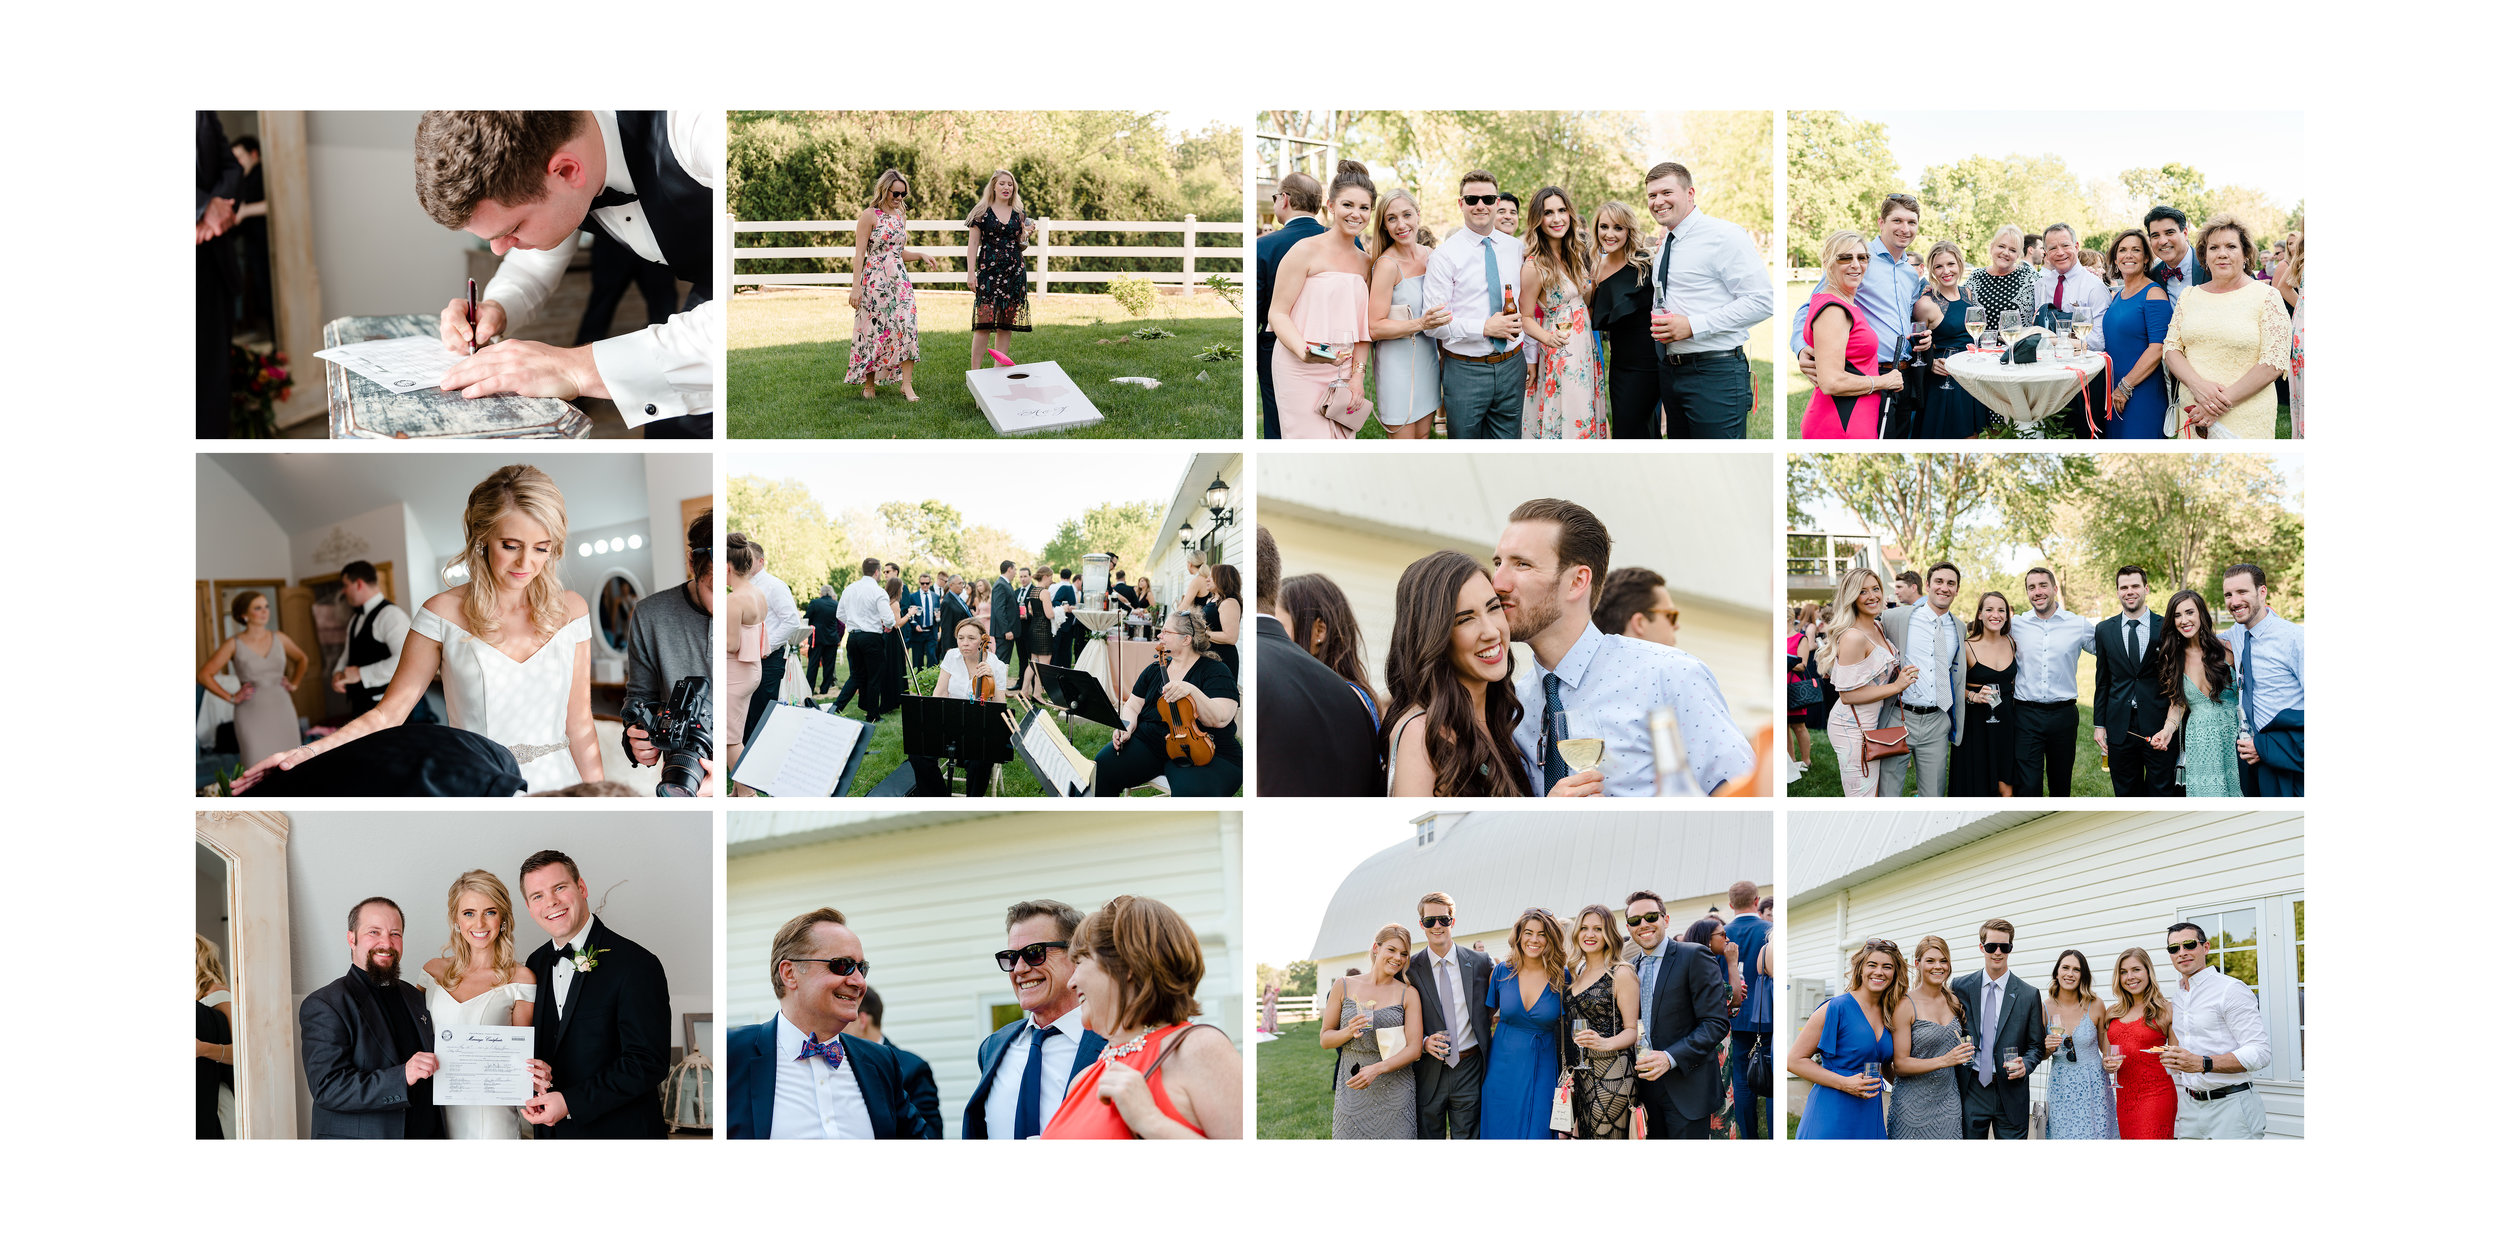 Amanda + Justin - Wedding Album_31.jpg